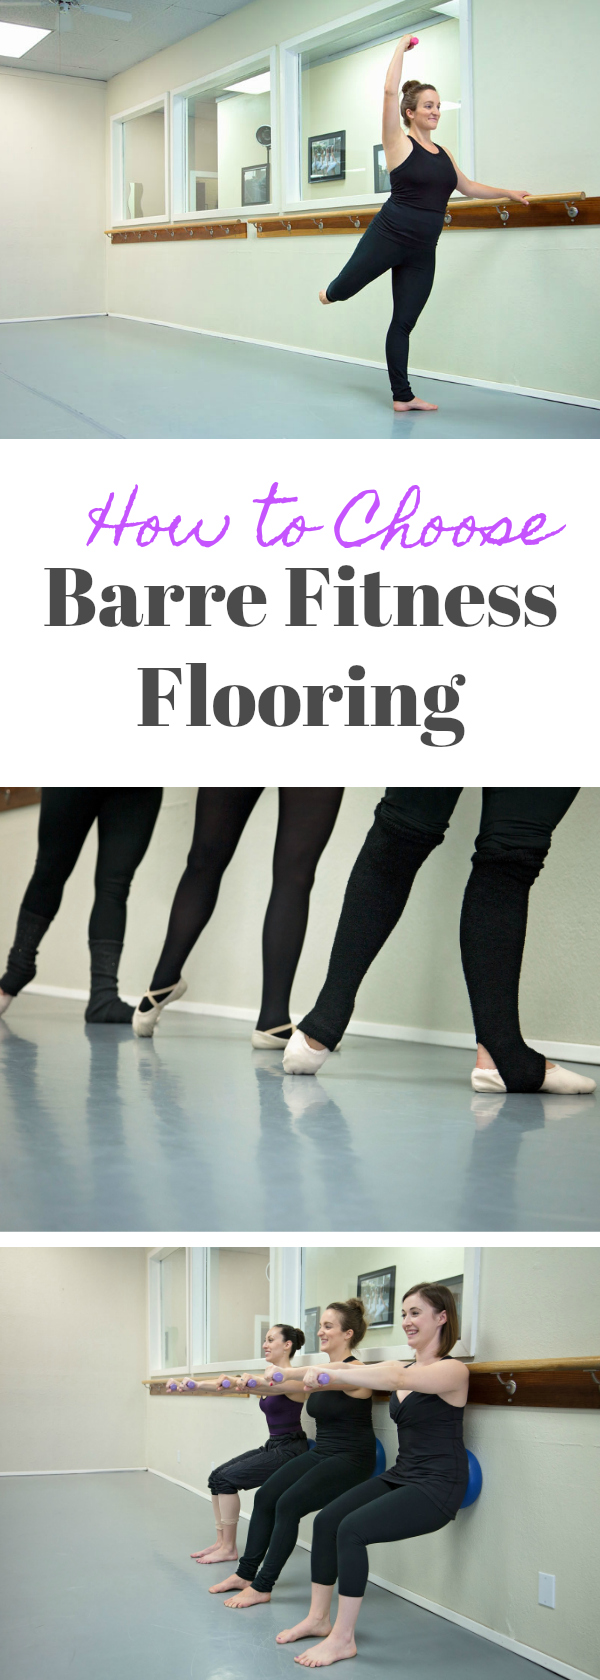 How To Choose Barre Fitness Flooring Flooringinc Blog